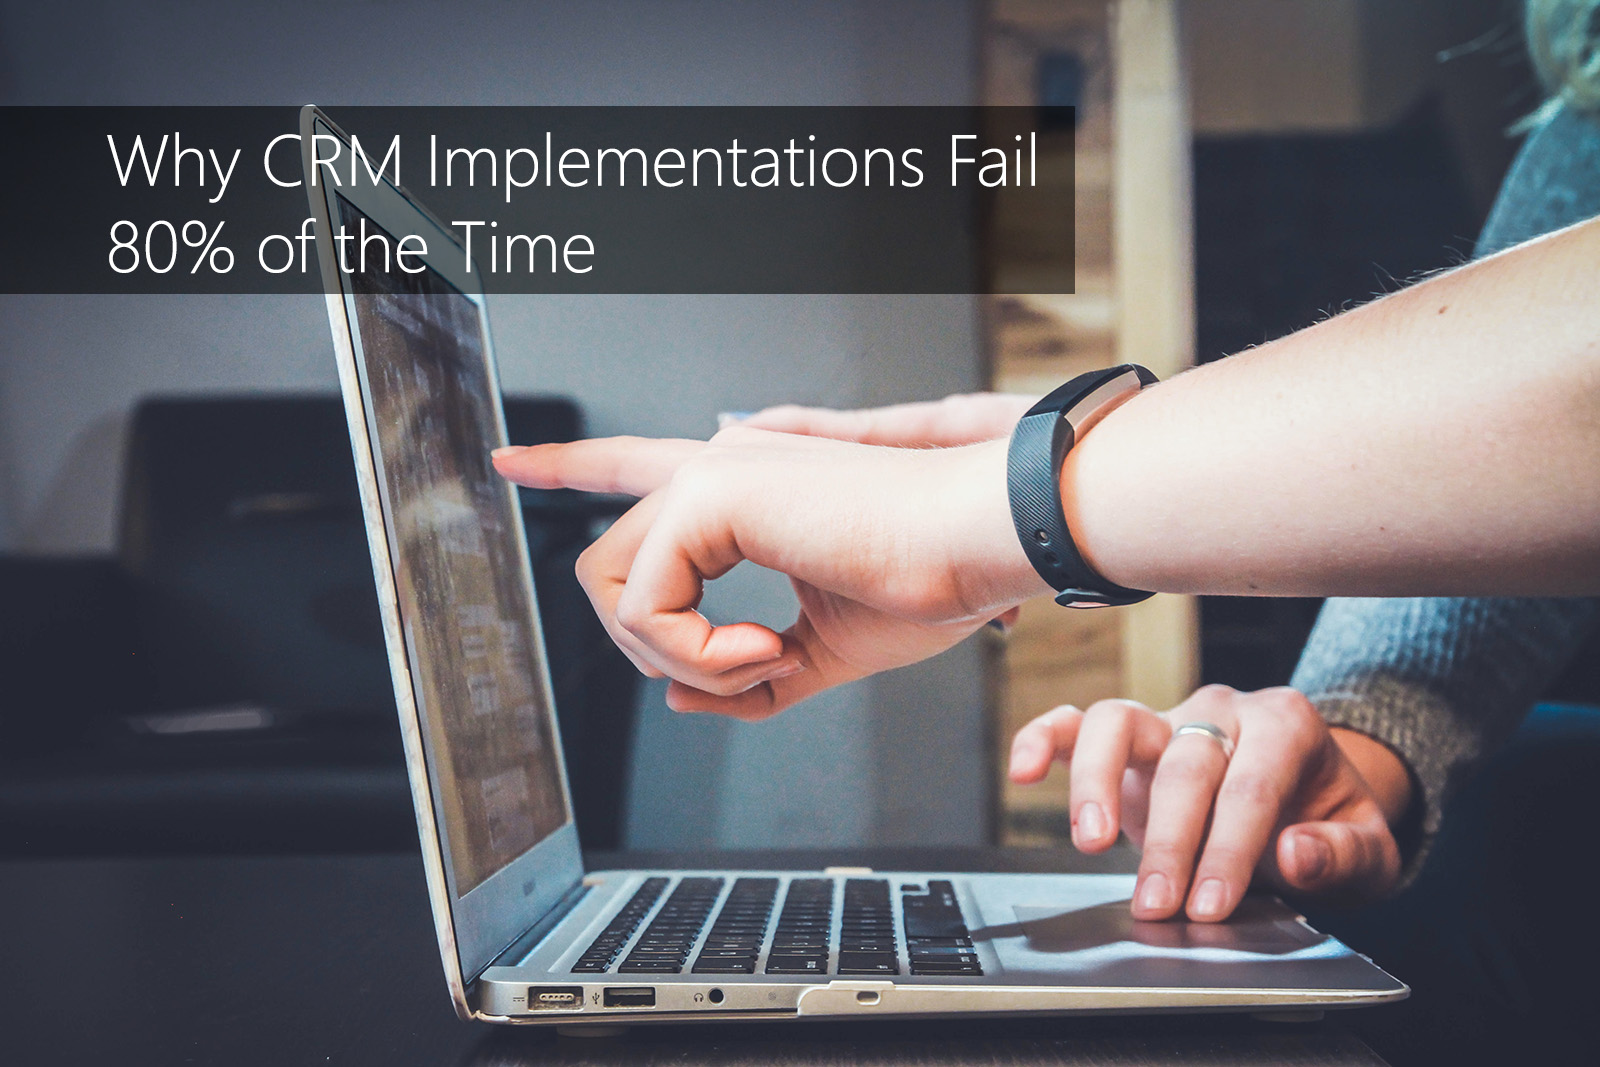 TMC-blog-why-crm-implementations-fail-80-of-the-time